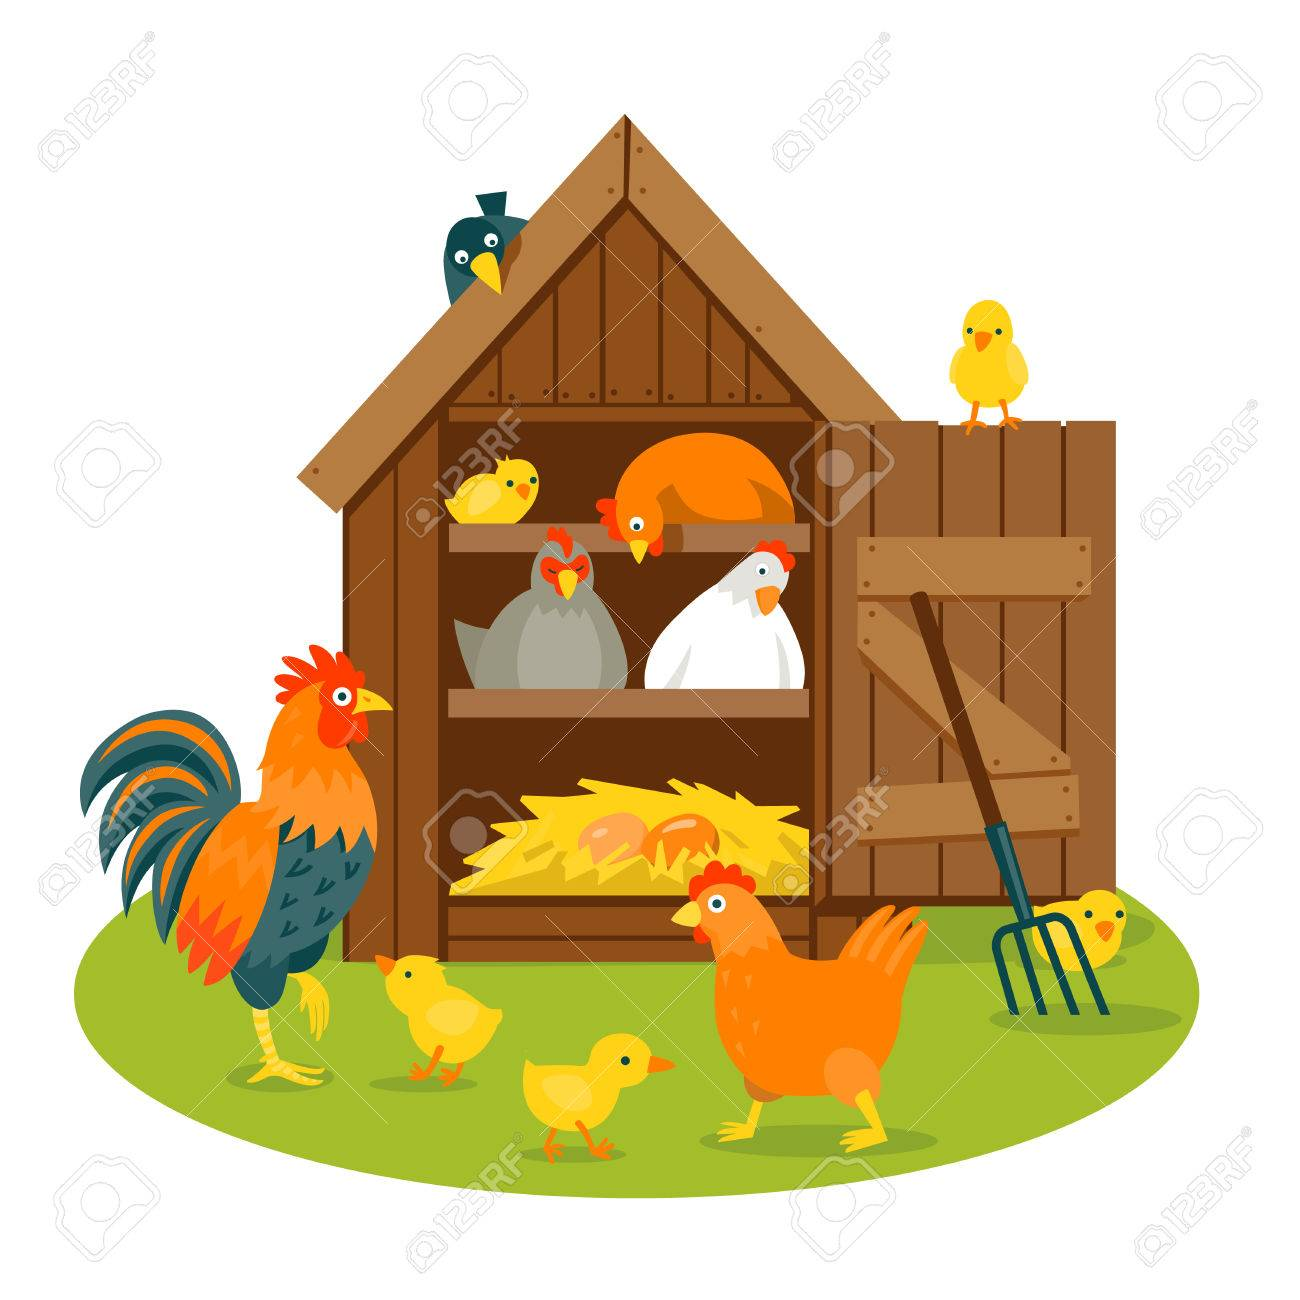 jpg freeuse library Free download best on. Hen house clipart.